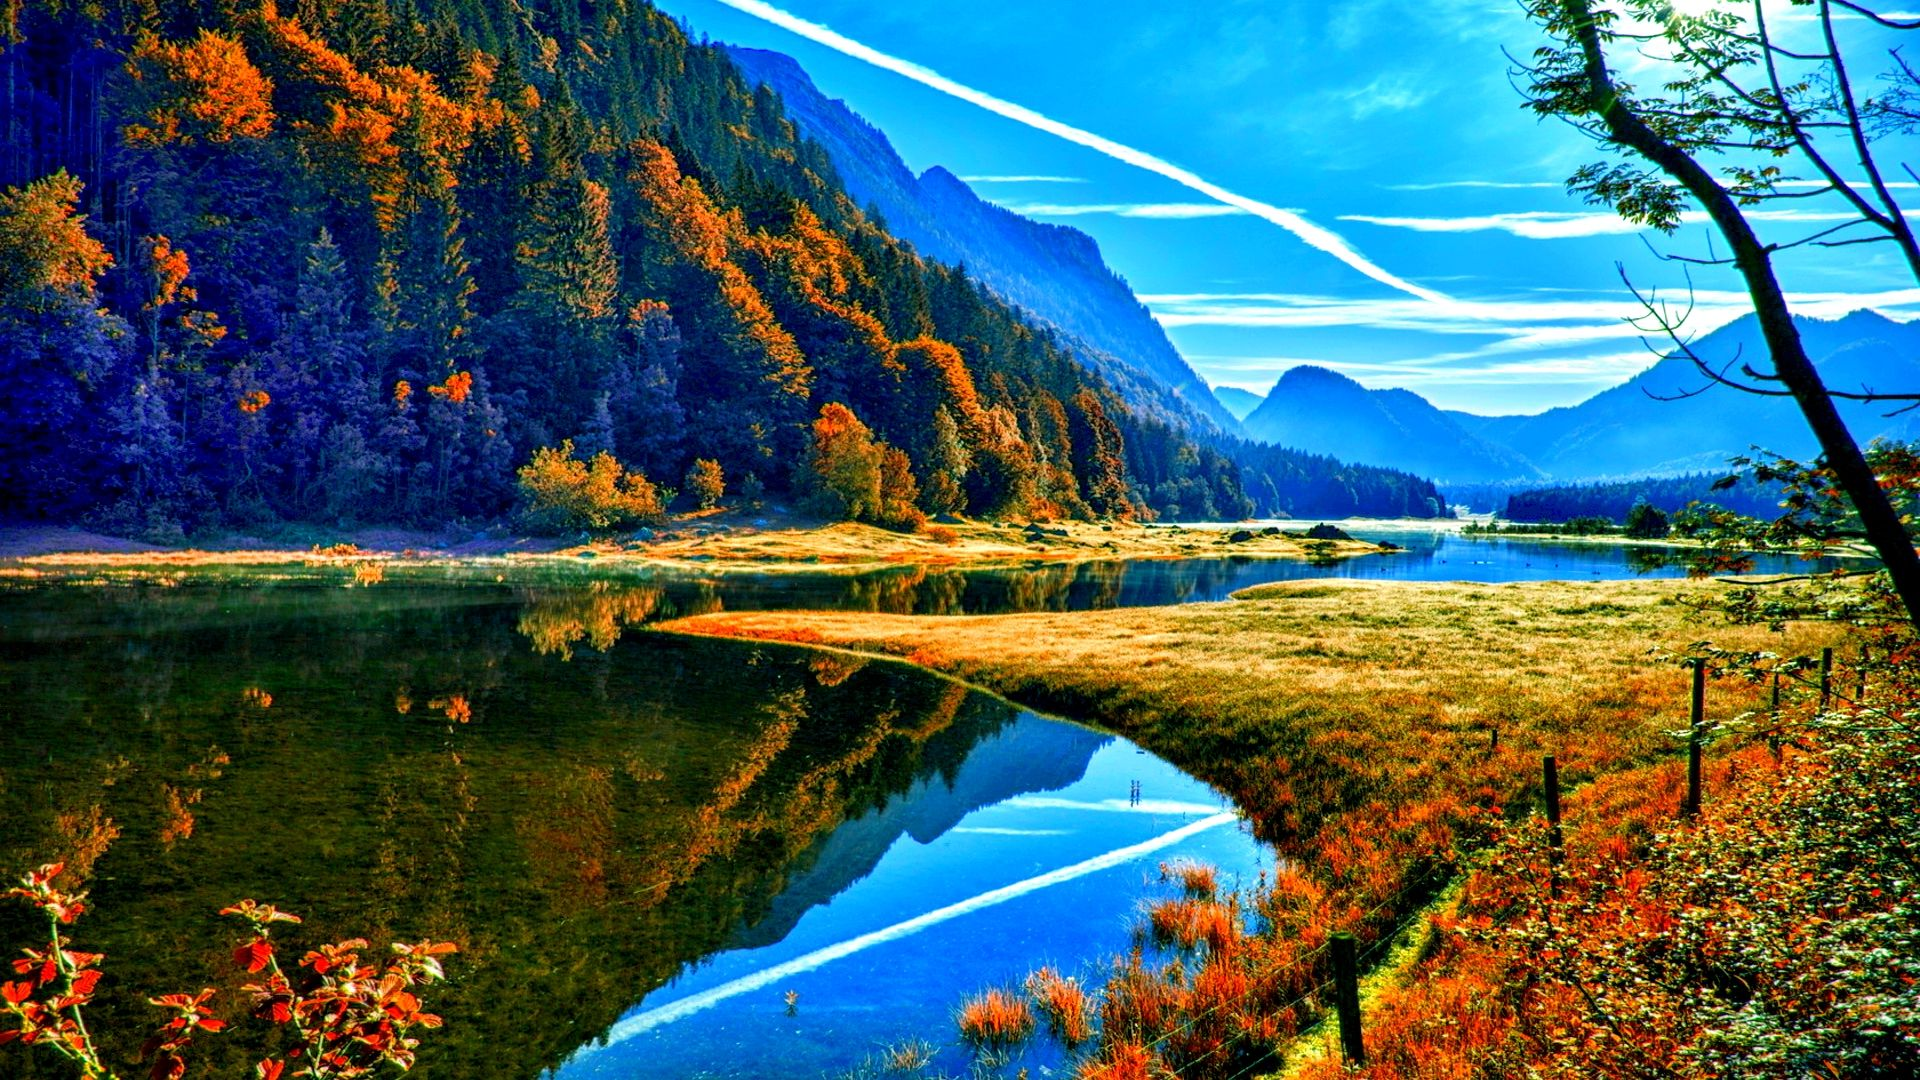 River wallpaper [1920x1080] Mountain river, Desktop